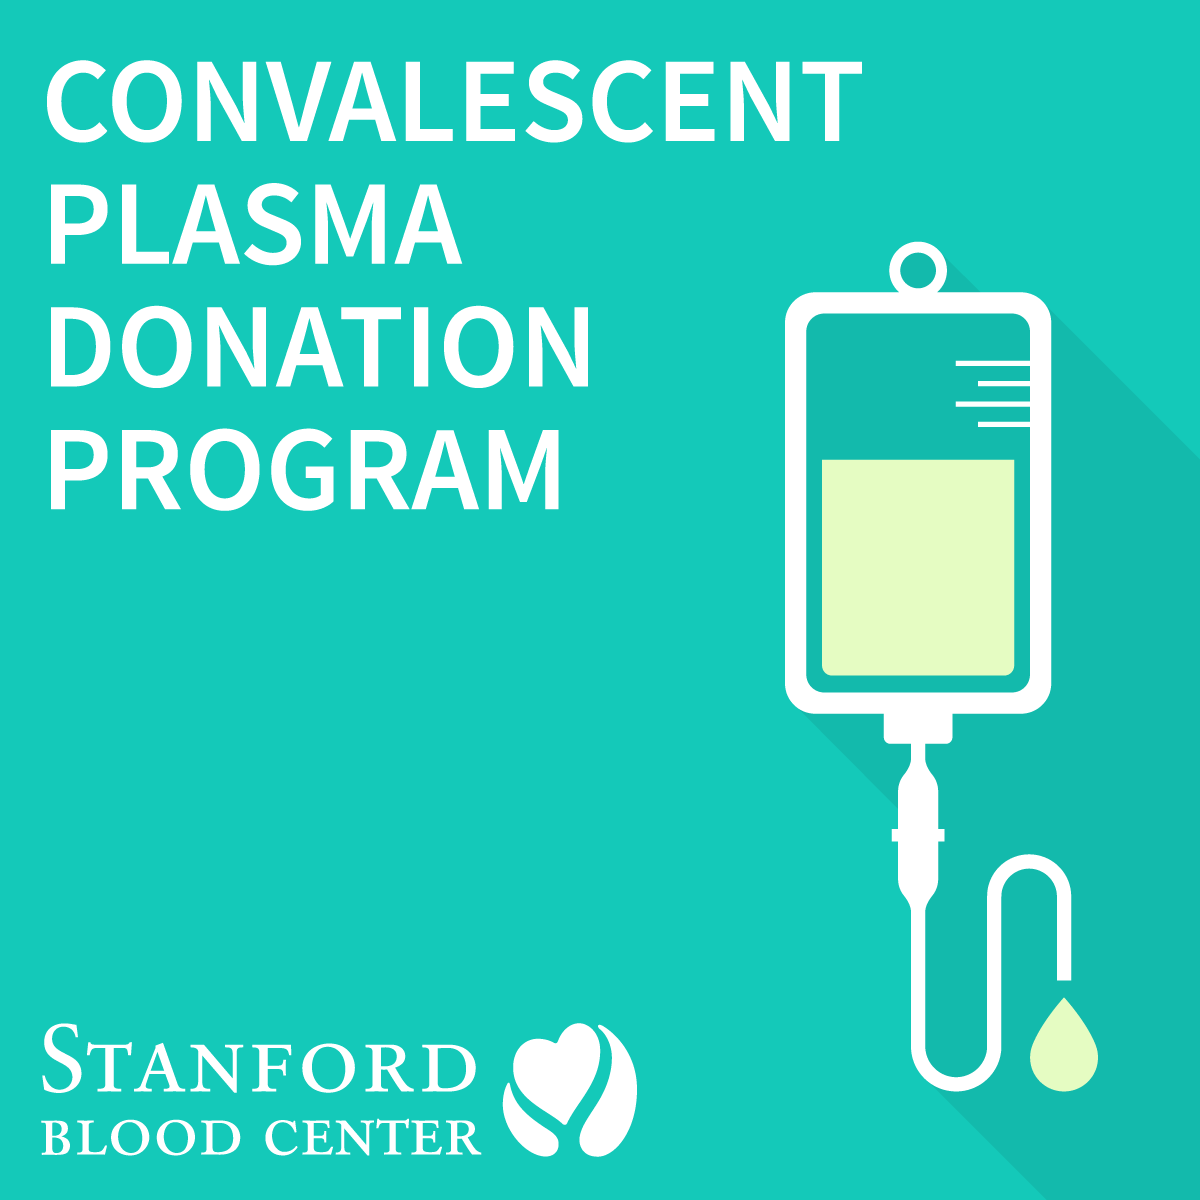 Convalescent Plasma Donation Program